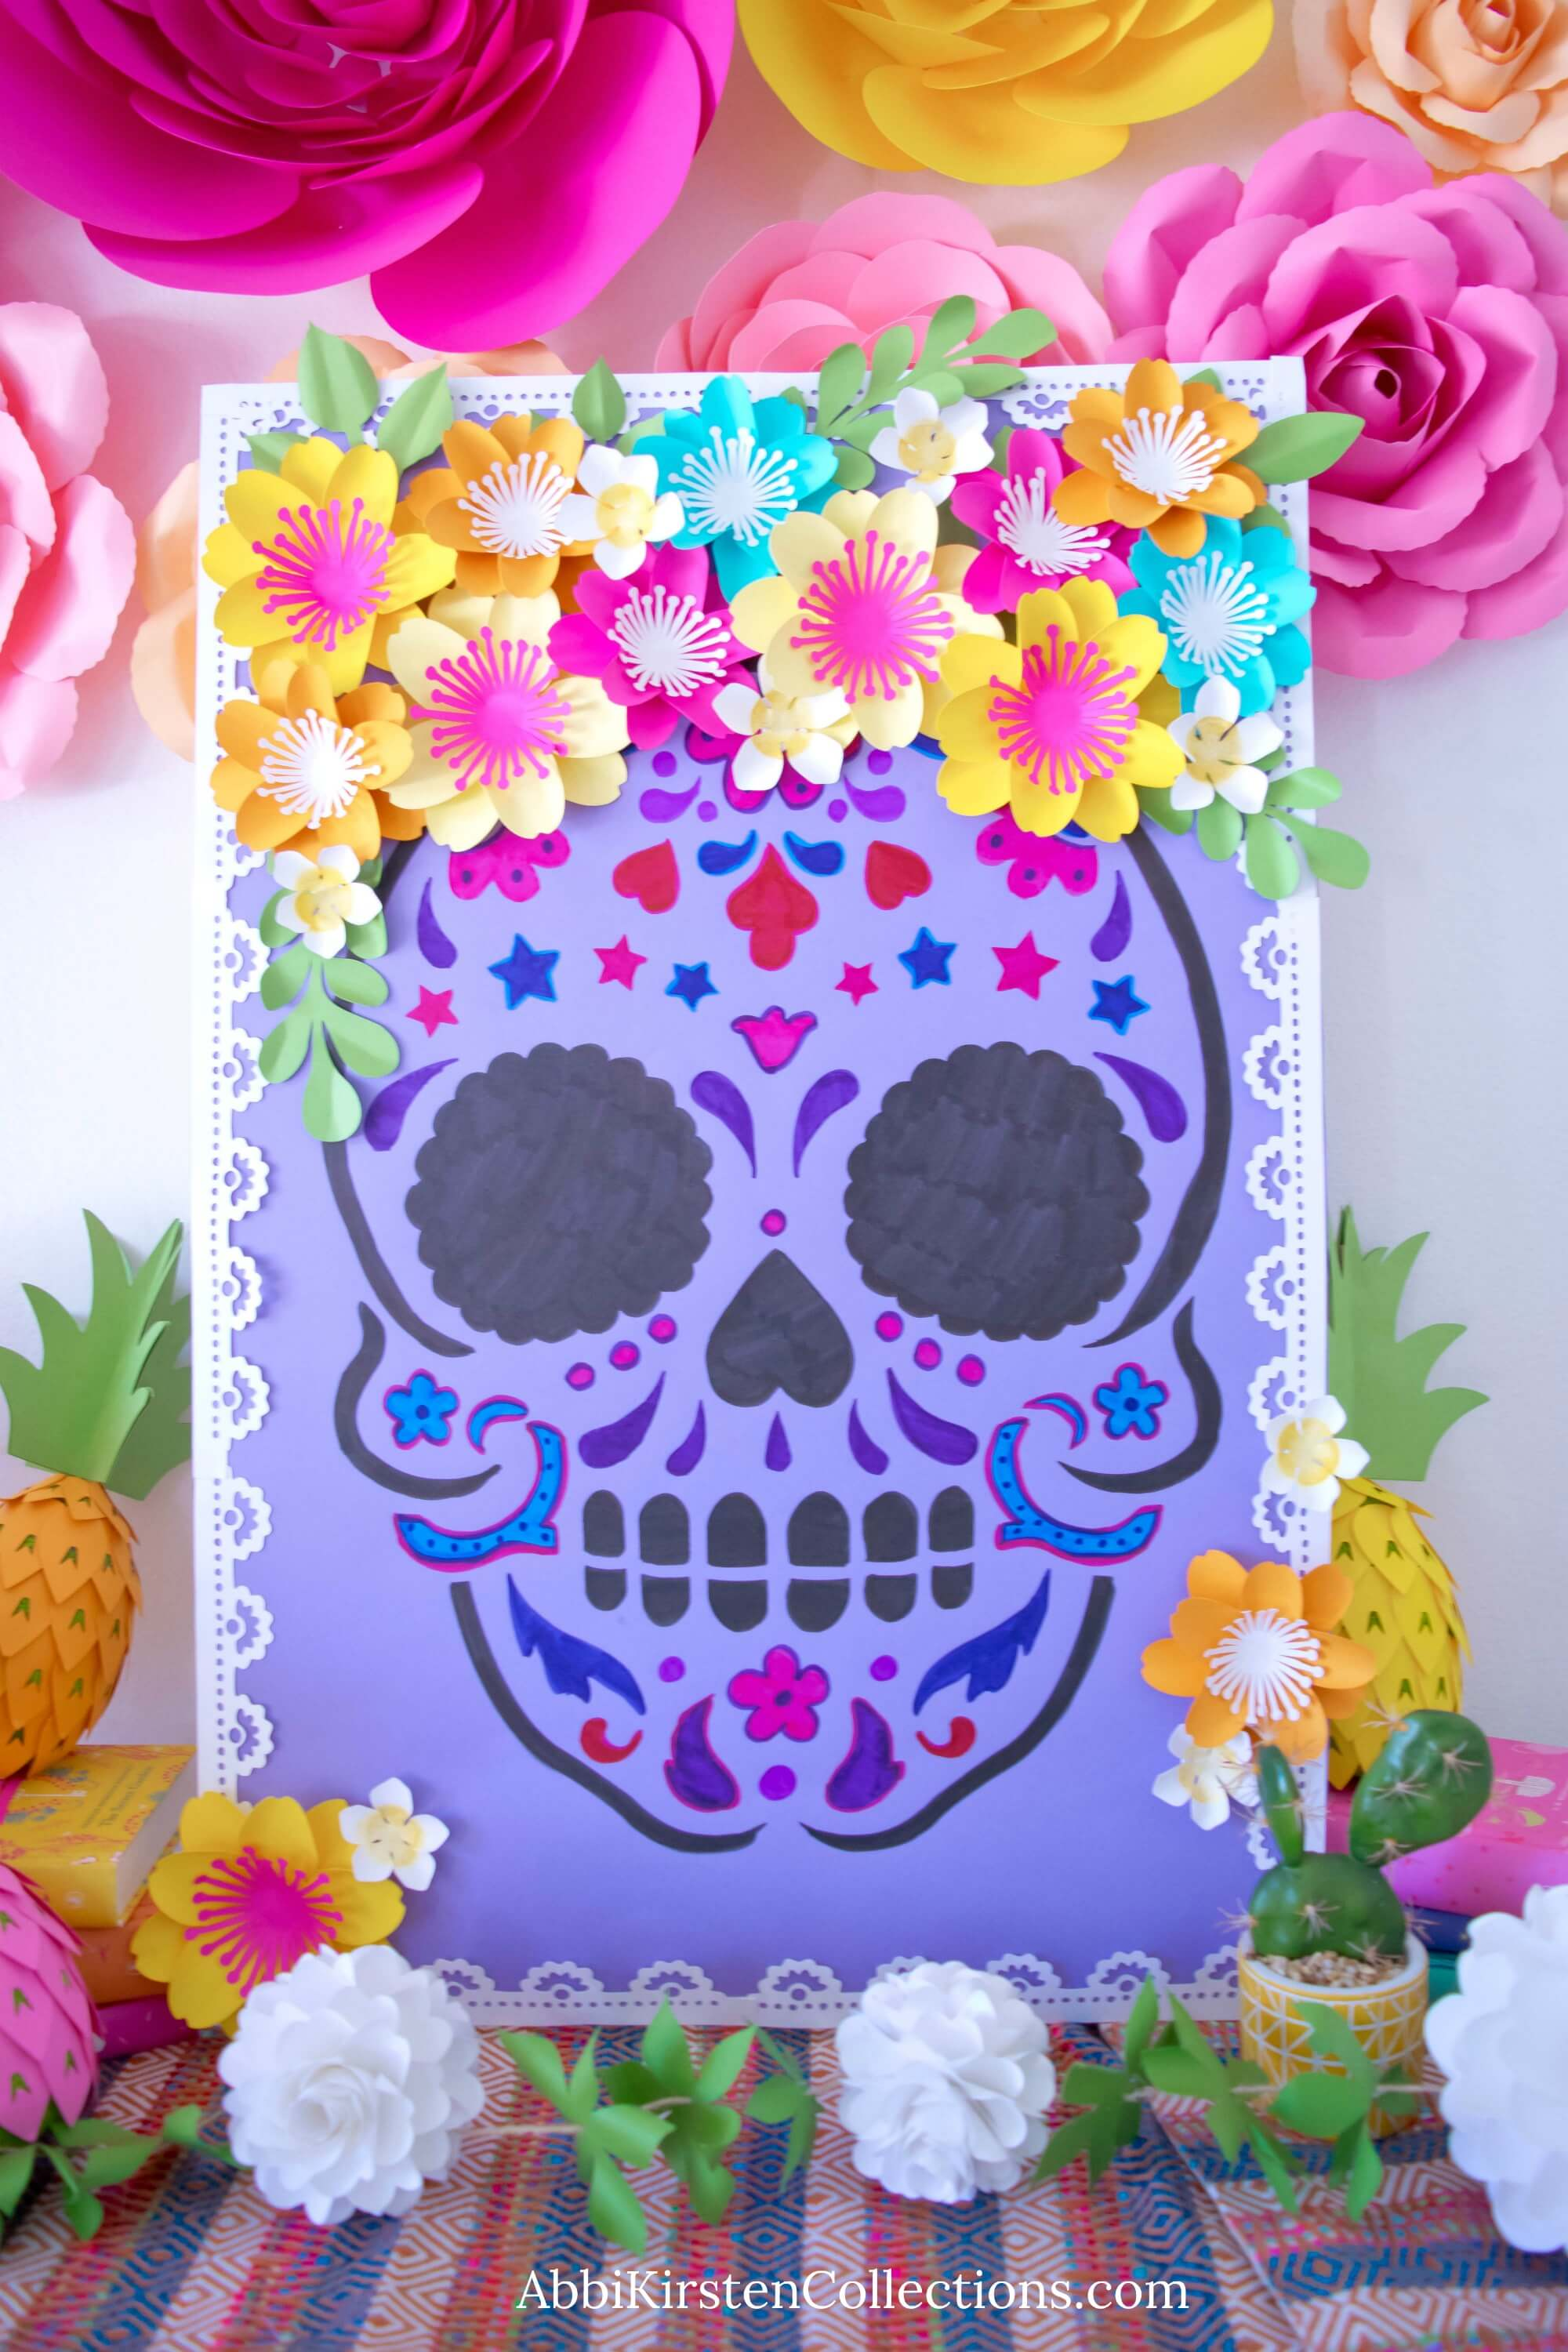 Day of the Dead Sugar Skull Craft and Tradition